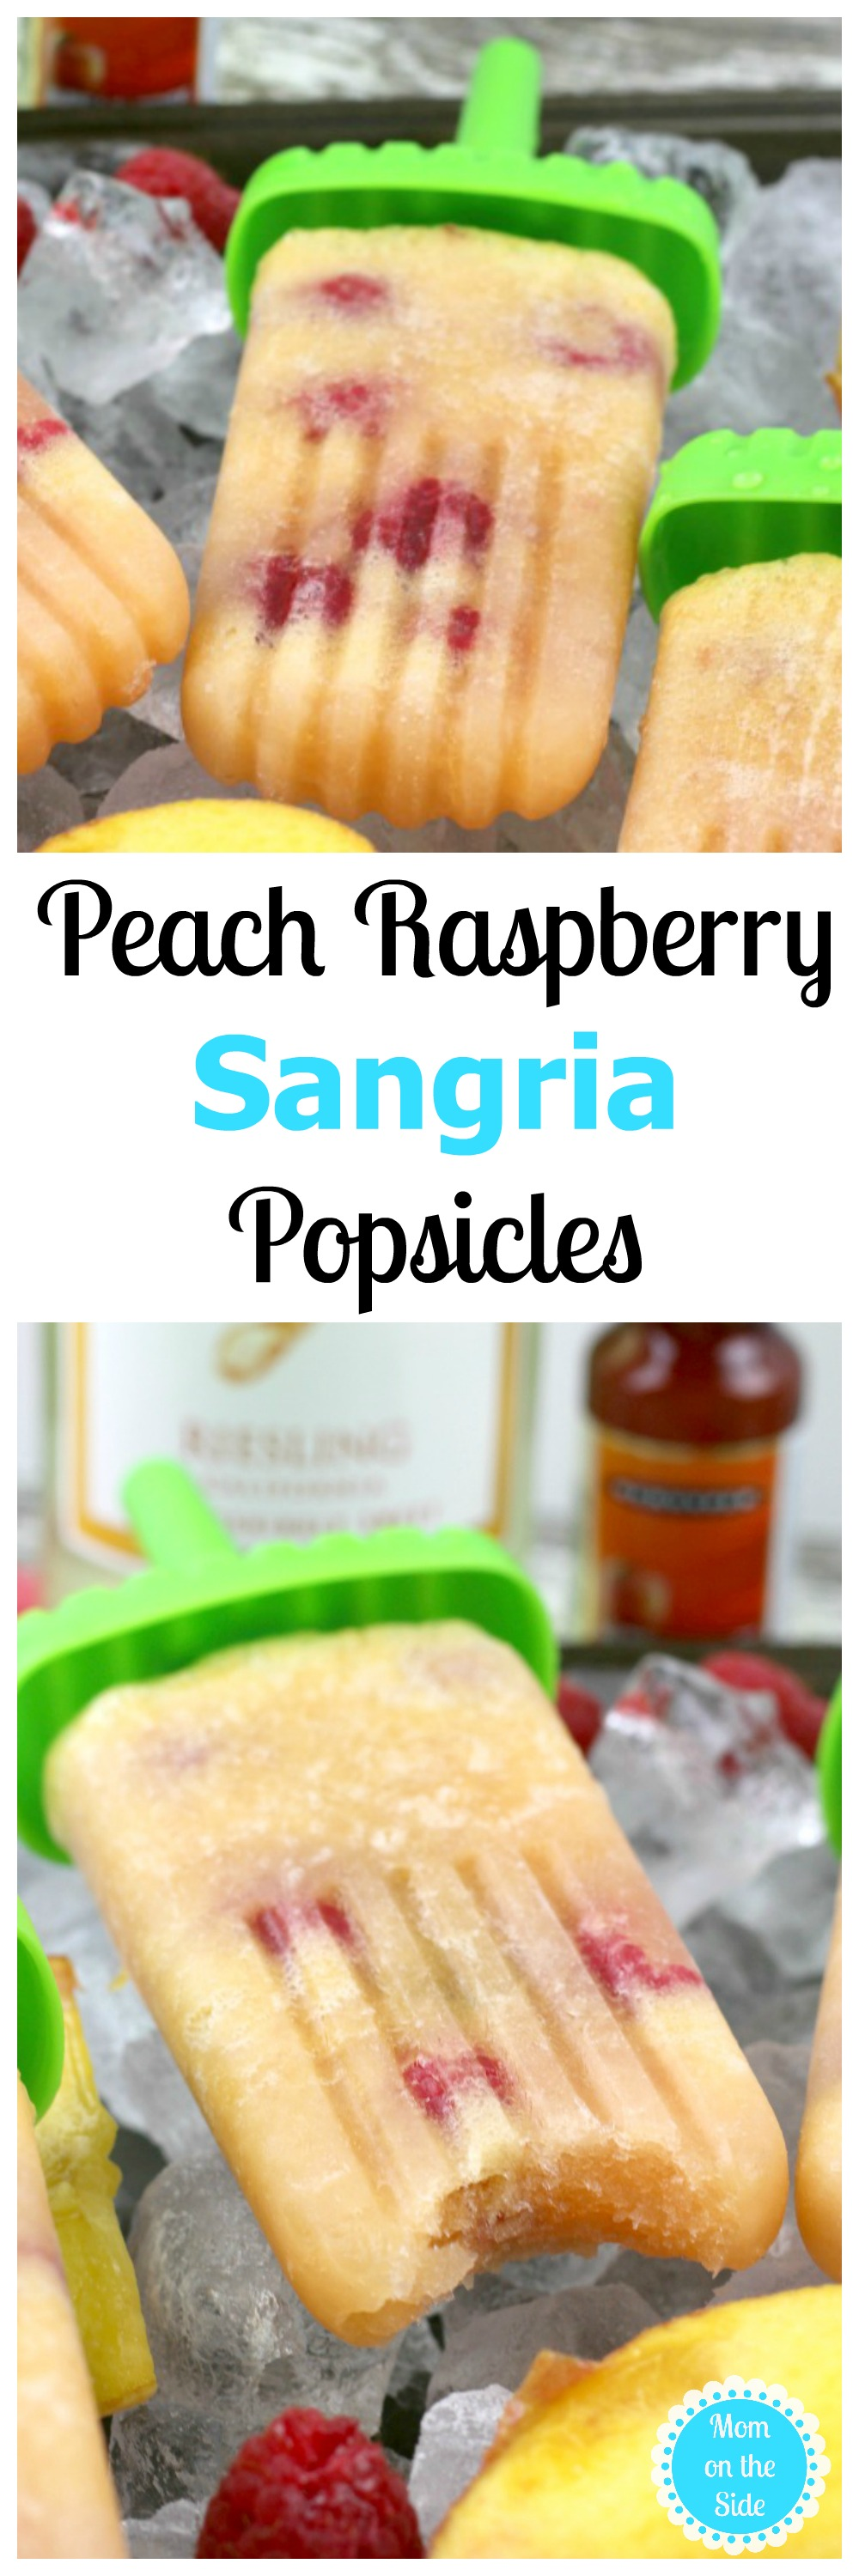 These Peach Raspberry Sangria Popsicles are going to knock your socks off on the way to flavor town. Get the alcohol popsicles recipe on Mom on the Side!